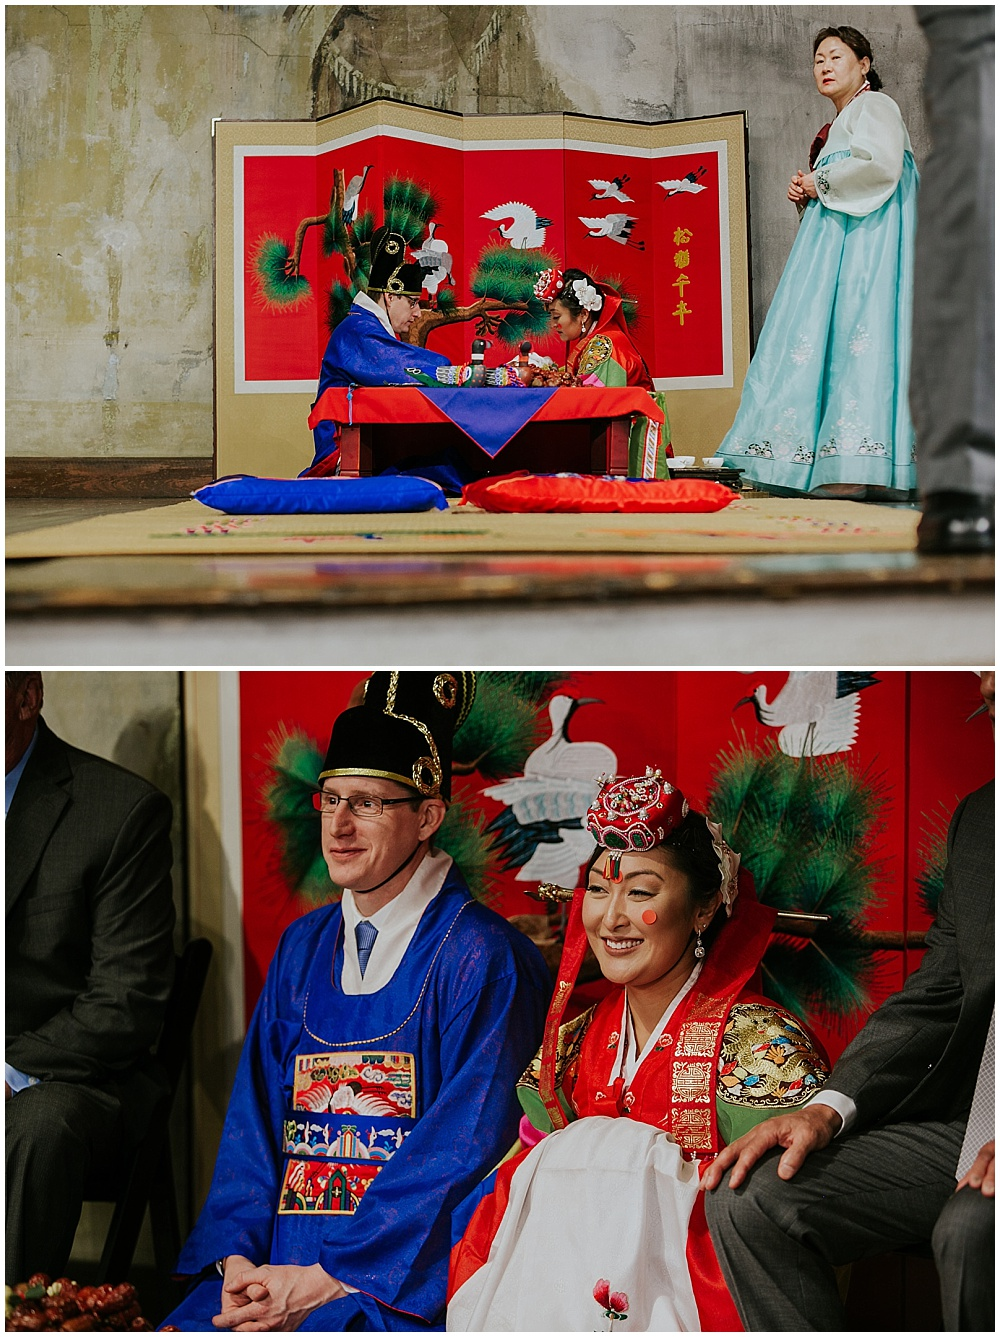 Bride and Groom in Korean cultured attire for Korean wedding ceremony | Korean-American intimate multicultural wedding in Neidhammer coffee shop